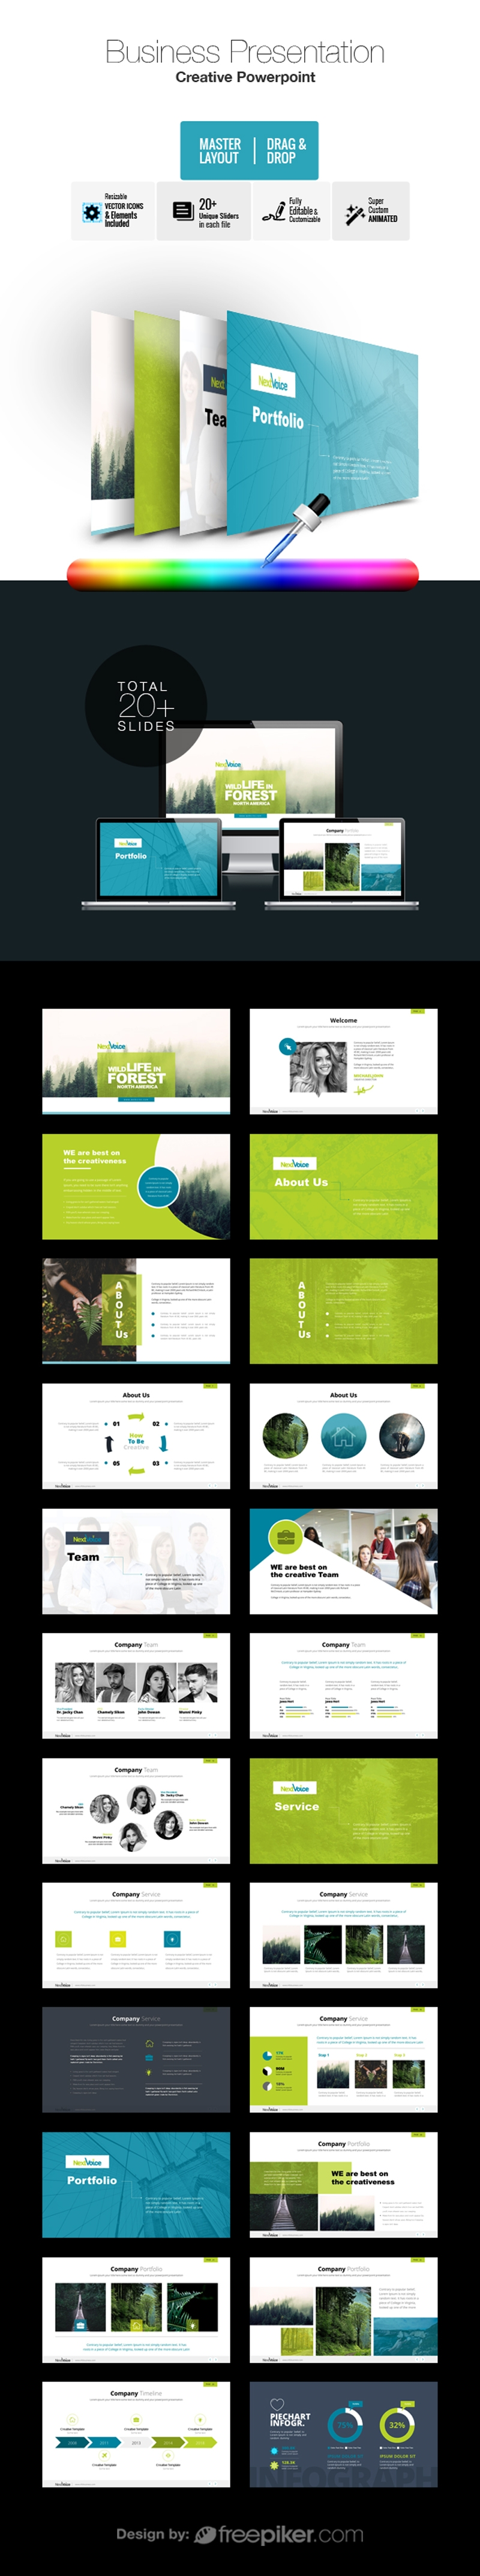 Forest Powerpoint presentation